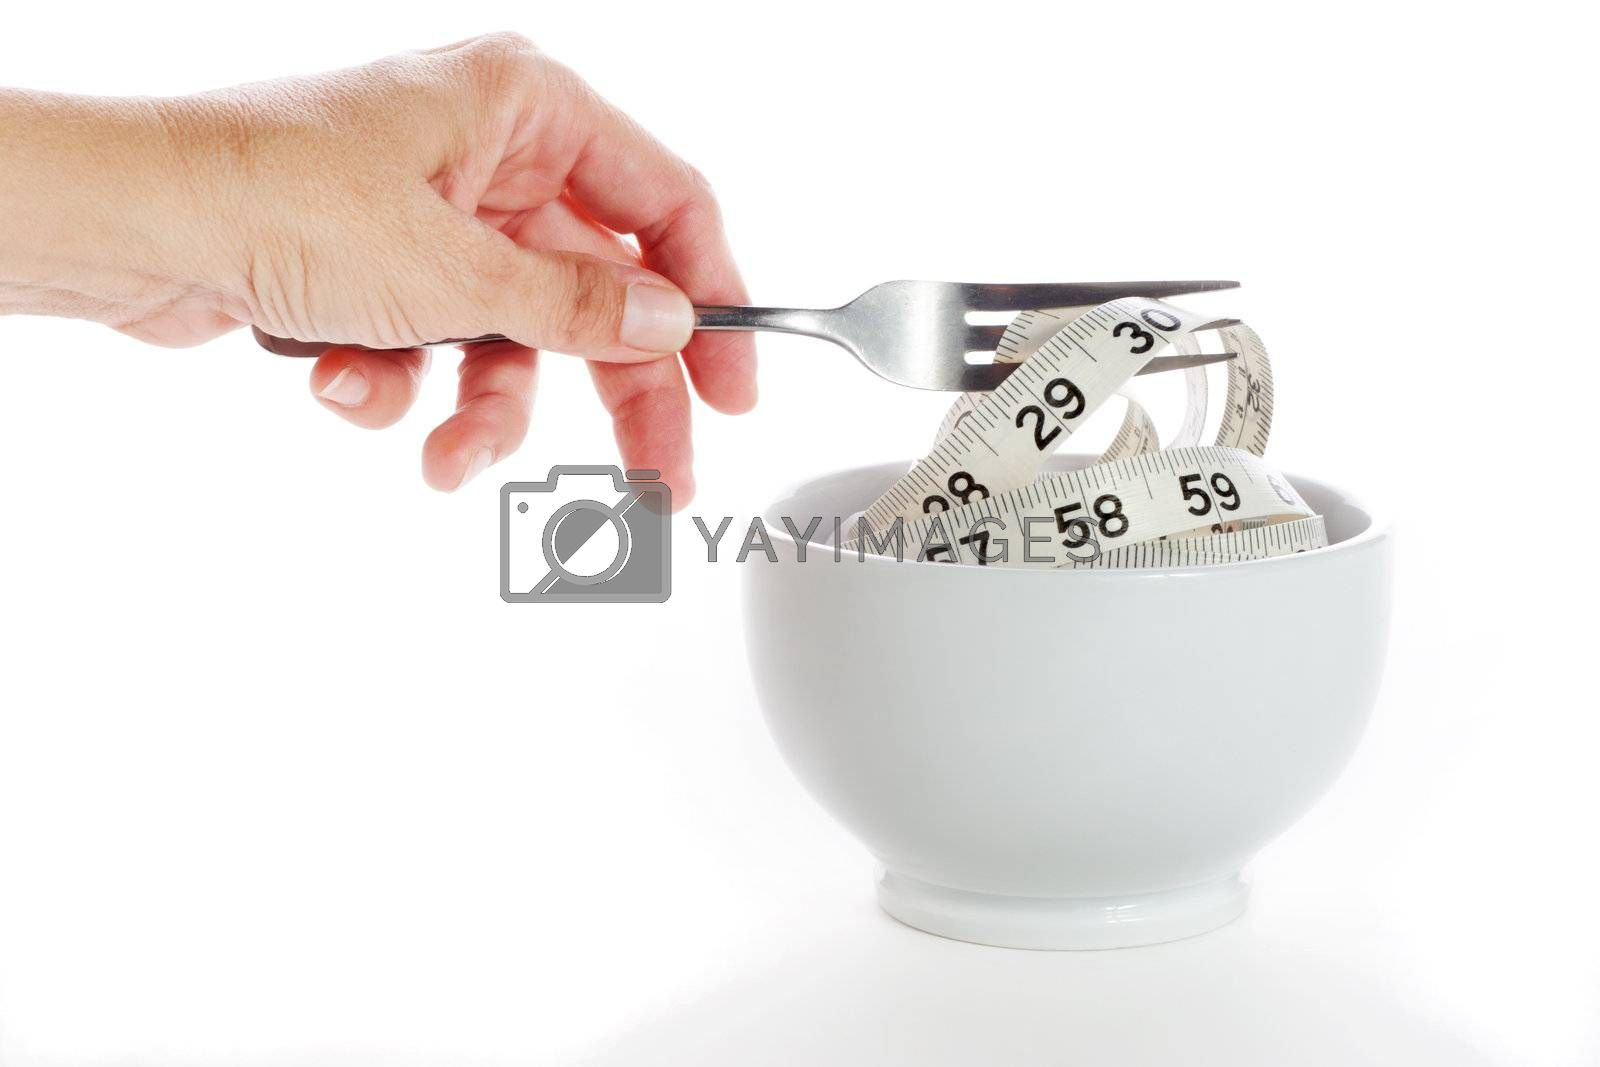 A woman's hand picks up a fork full of a tape measure from a white cup